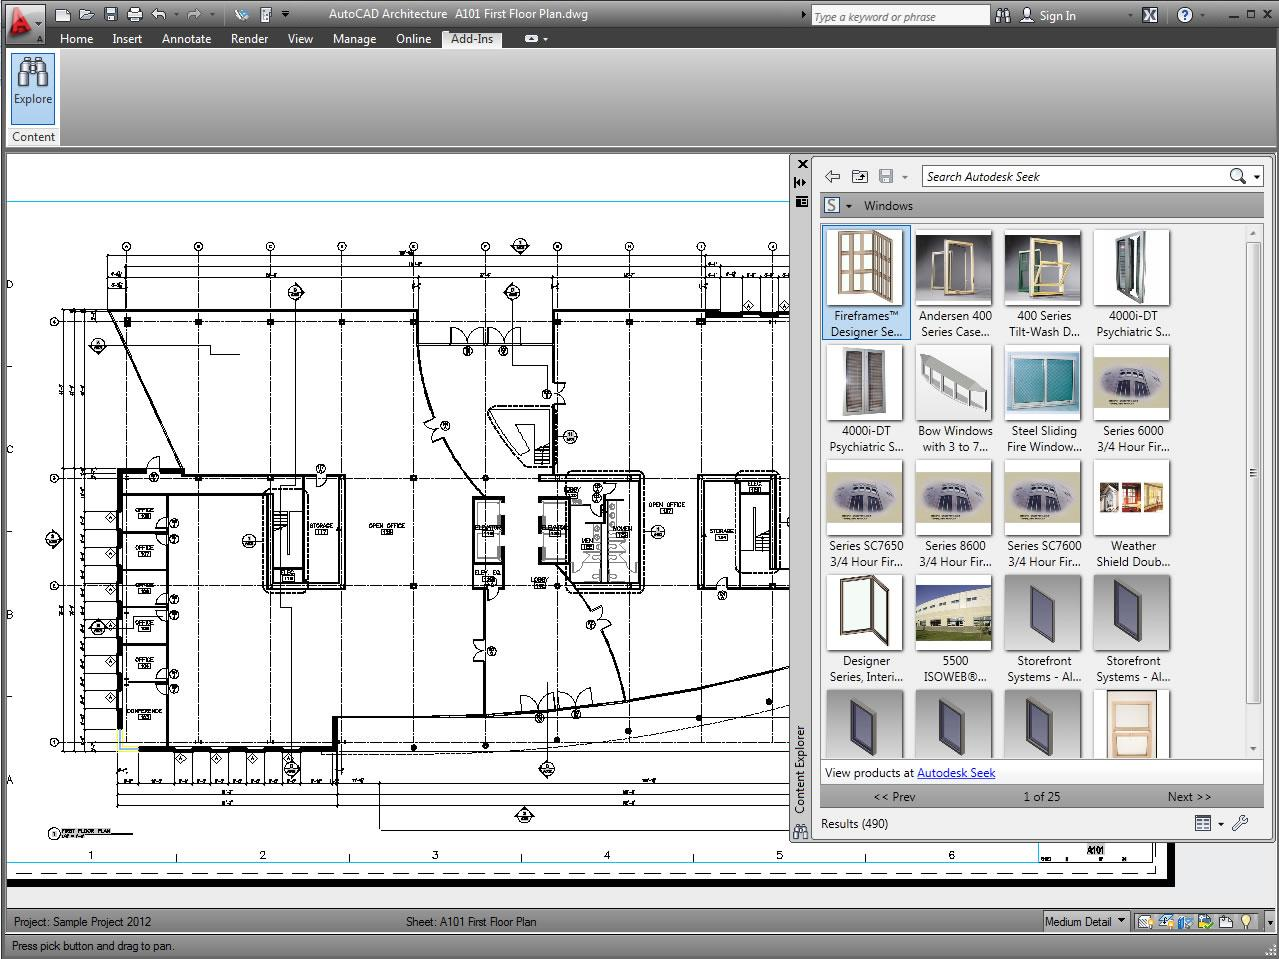 Download autocad architecture 2012 tutorial abuncani1973 3d architect software free download